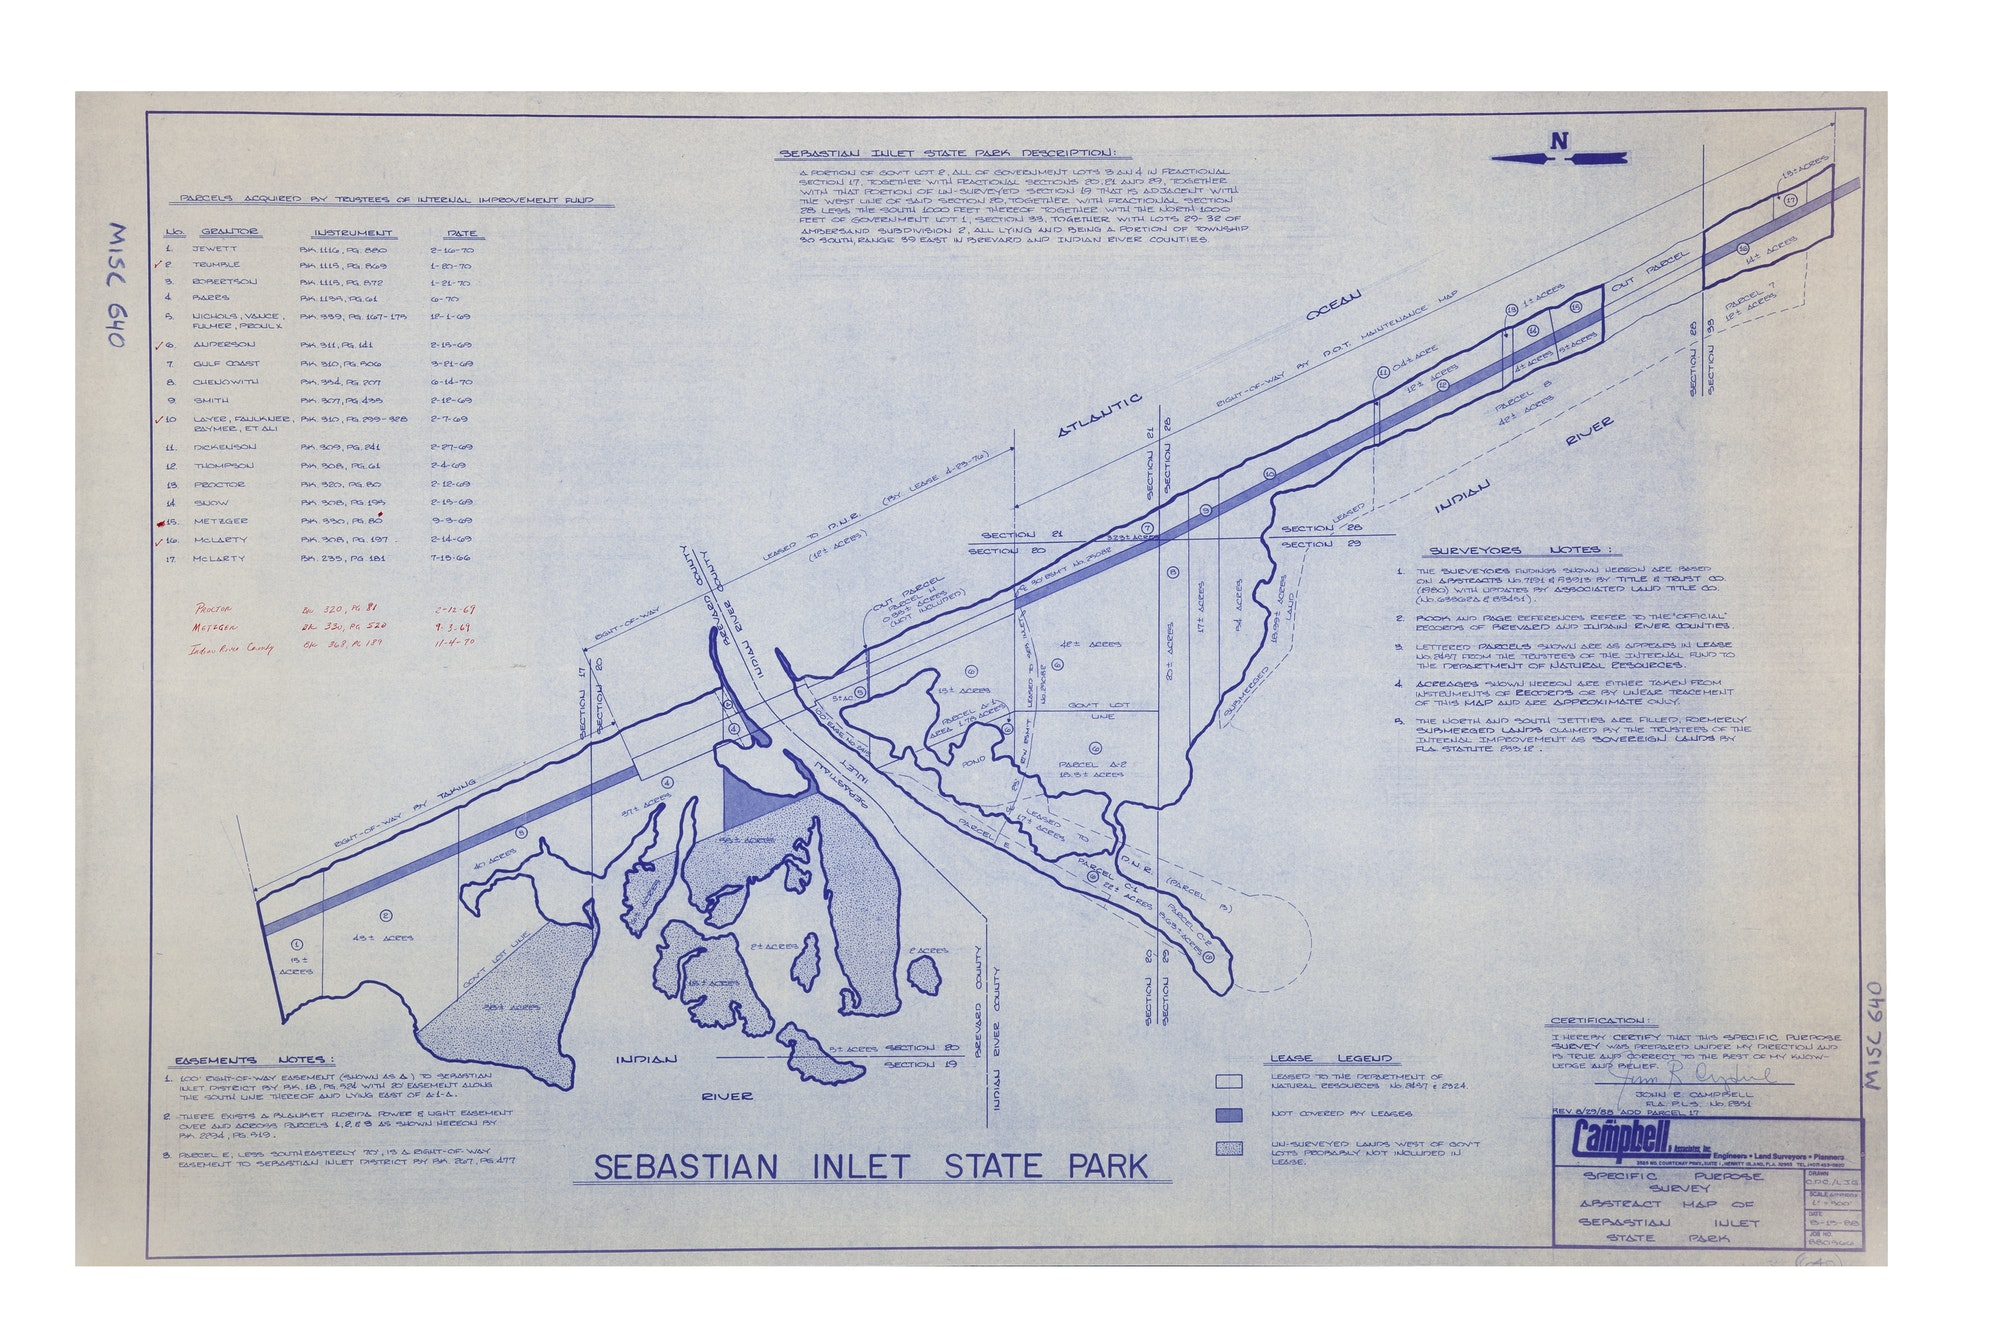 blueprint map of easements and land acquired for Sebastian Inlet State Park